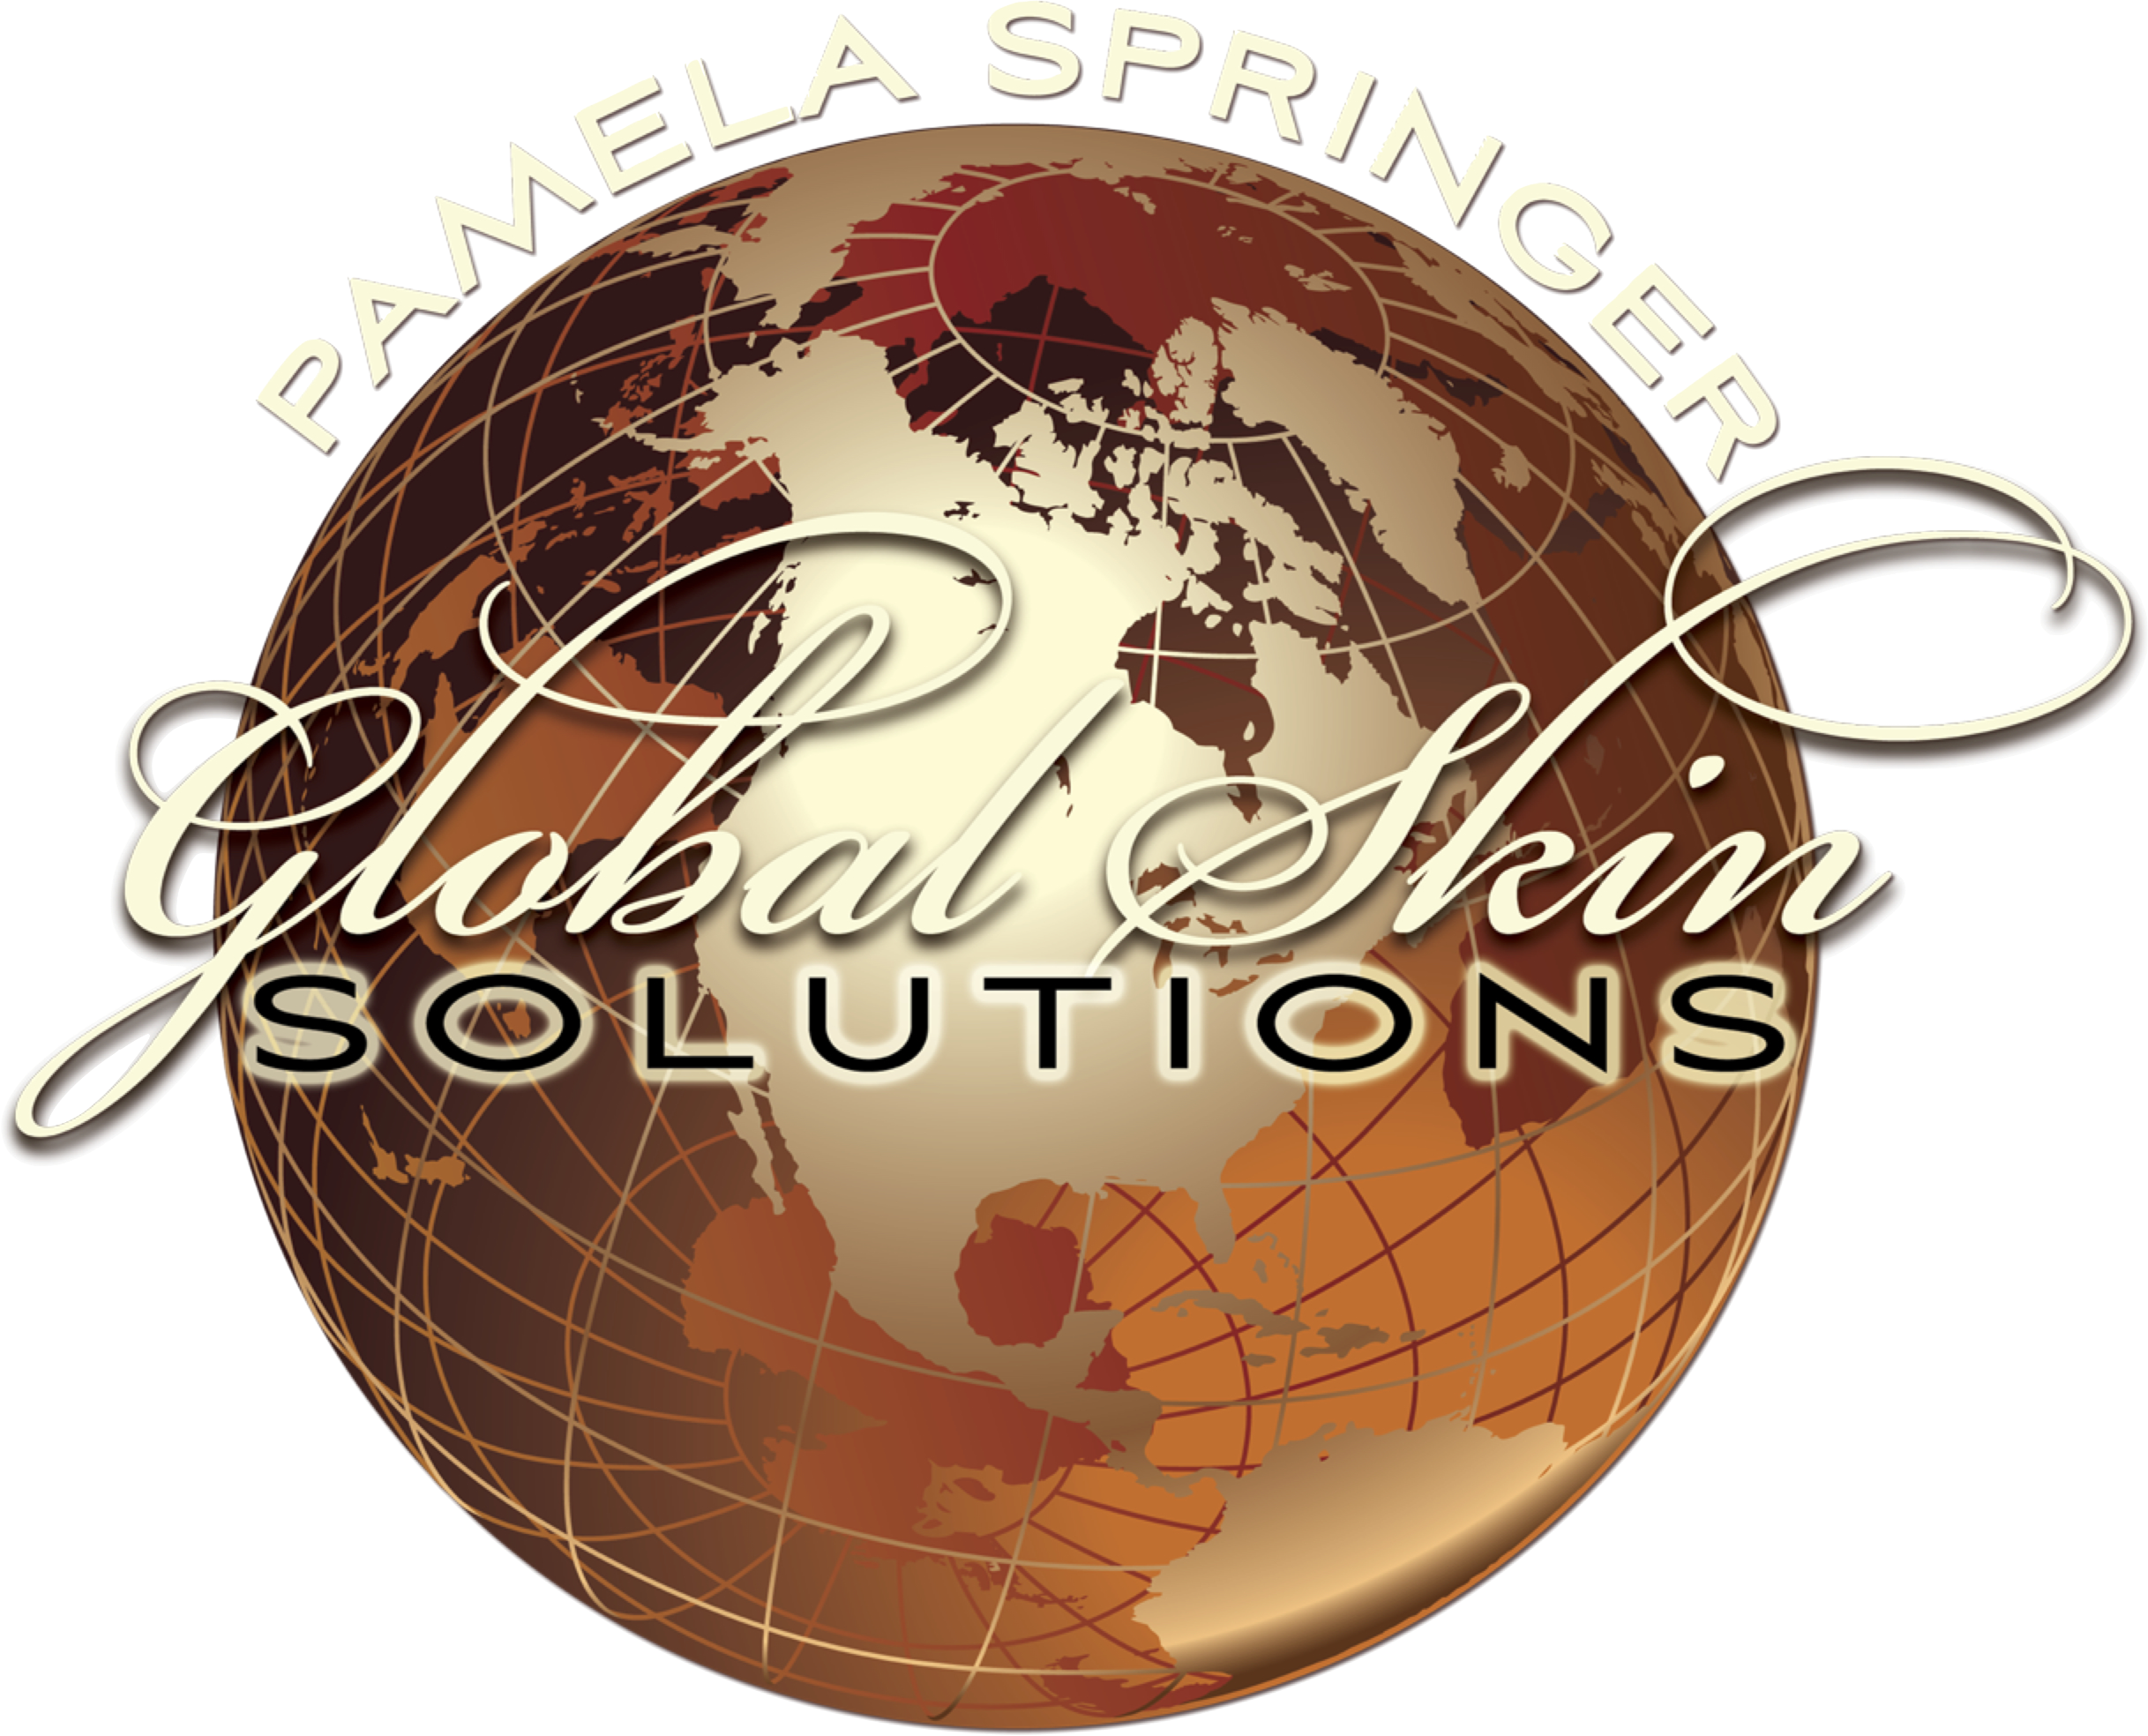 Global Skin Solutions